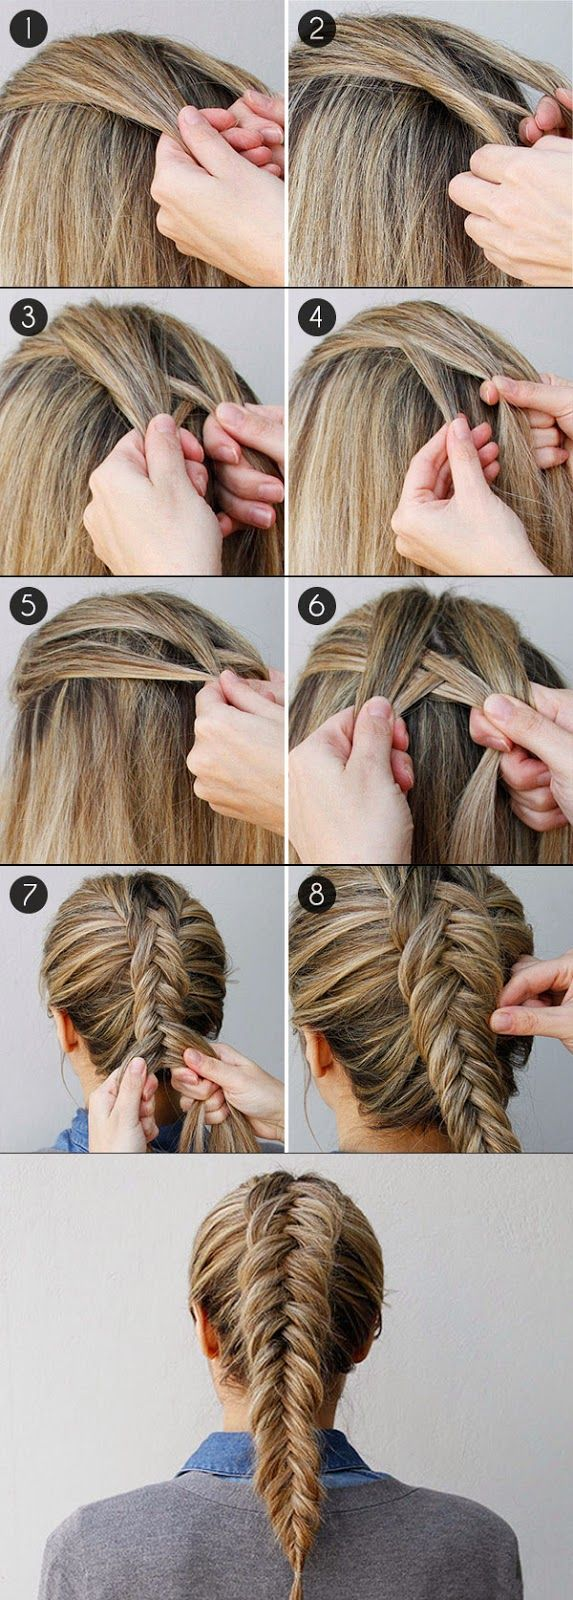 French braiding tips - How To Fishtail French Braid